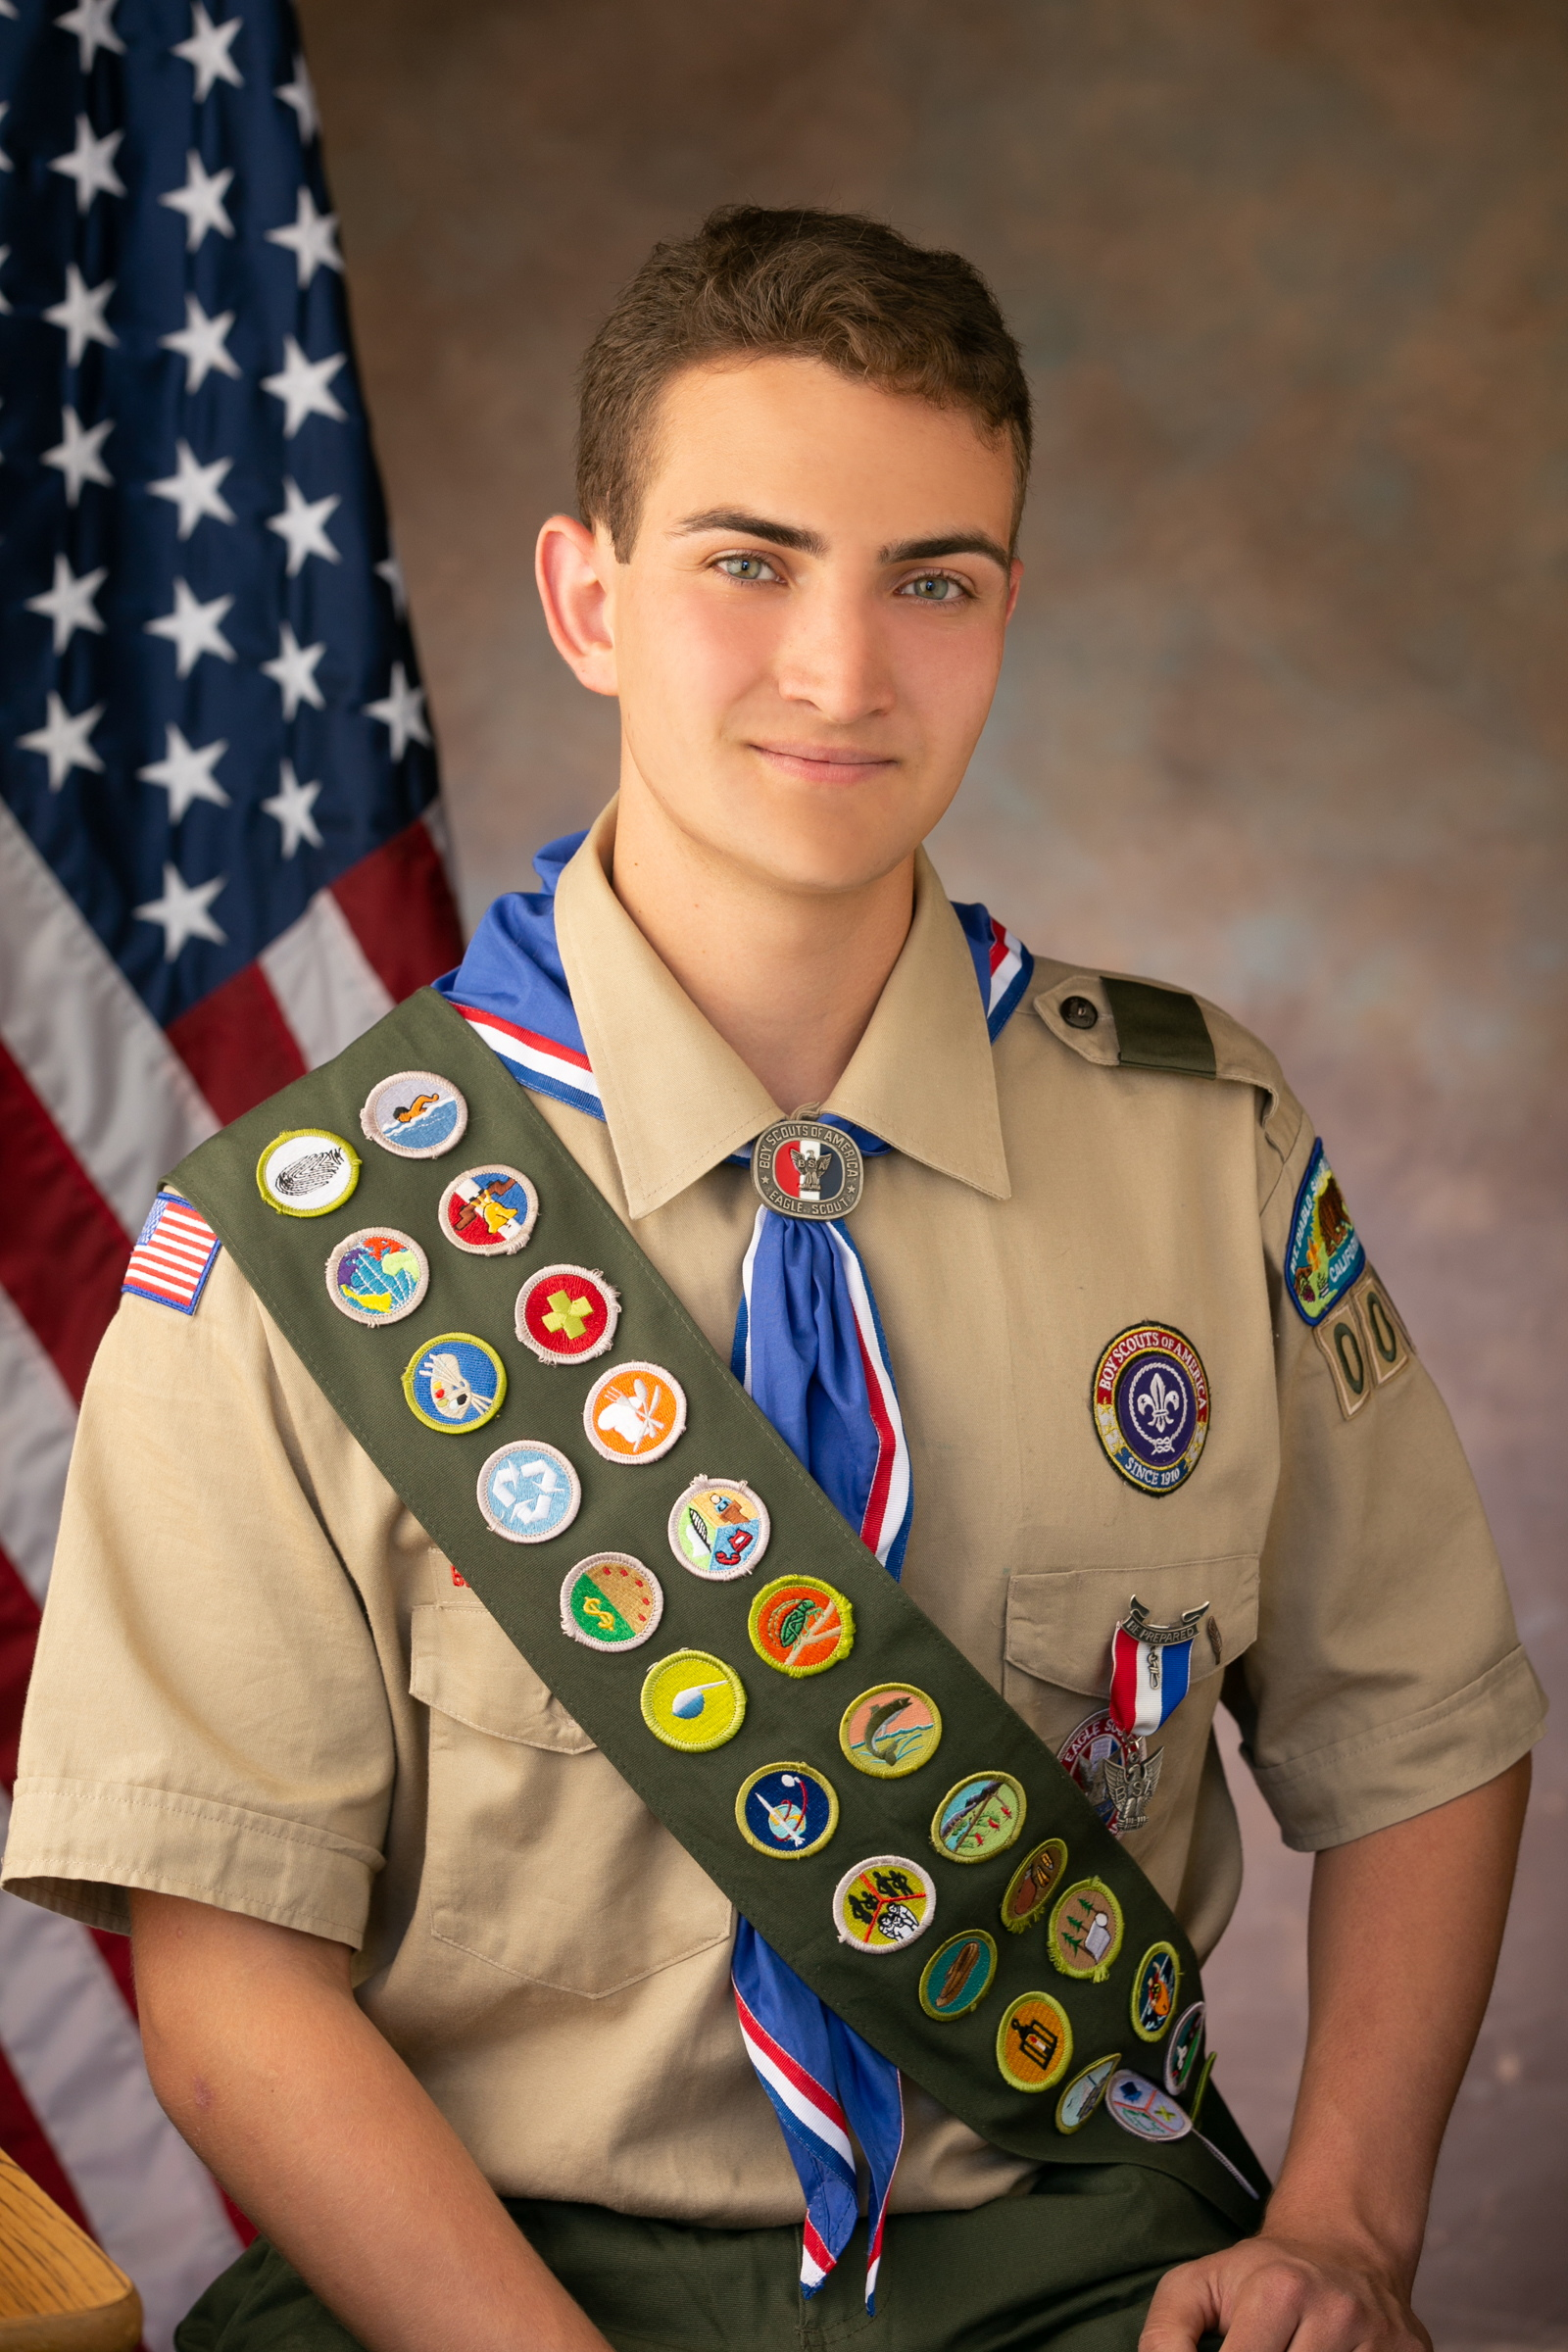 Benicia resident earns Eagle Scout rank; constructs